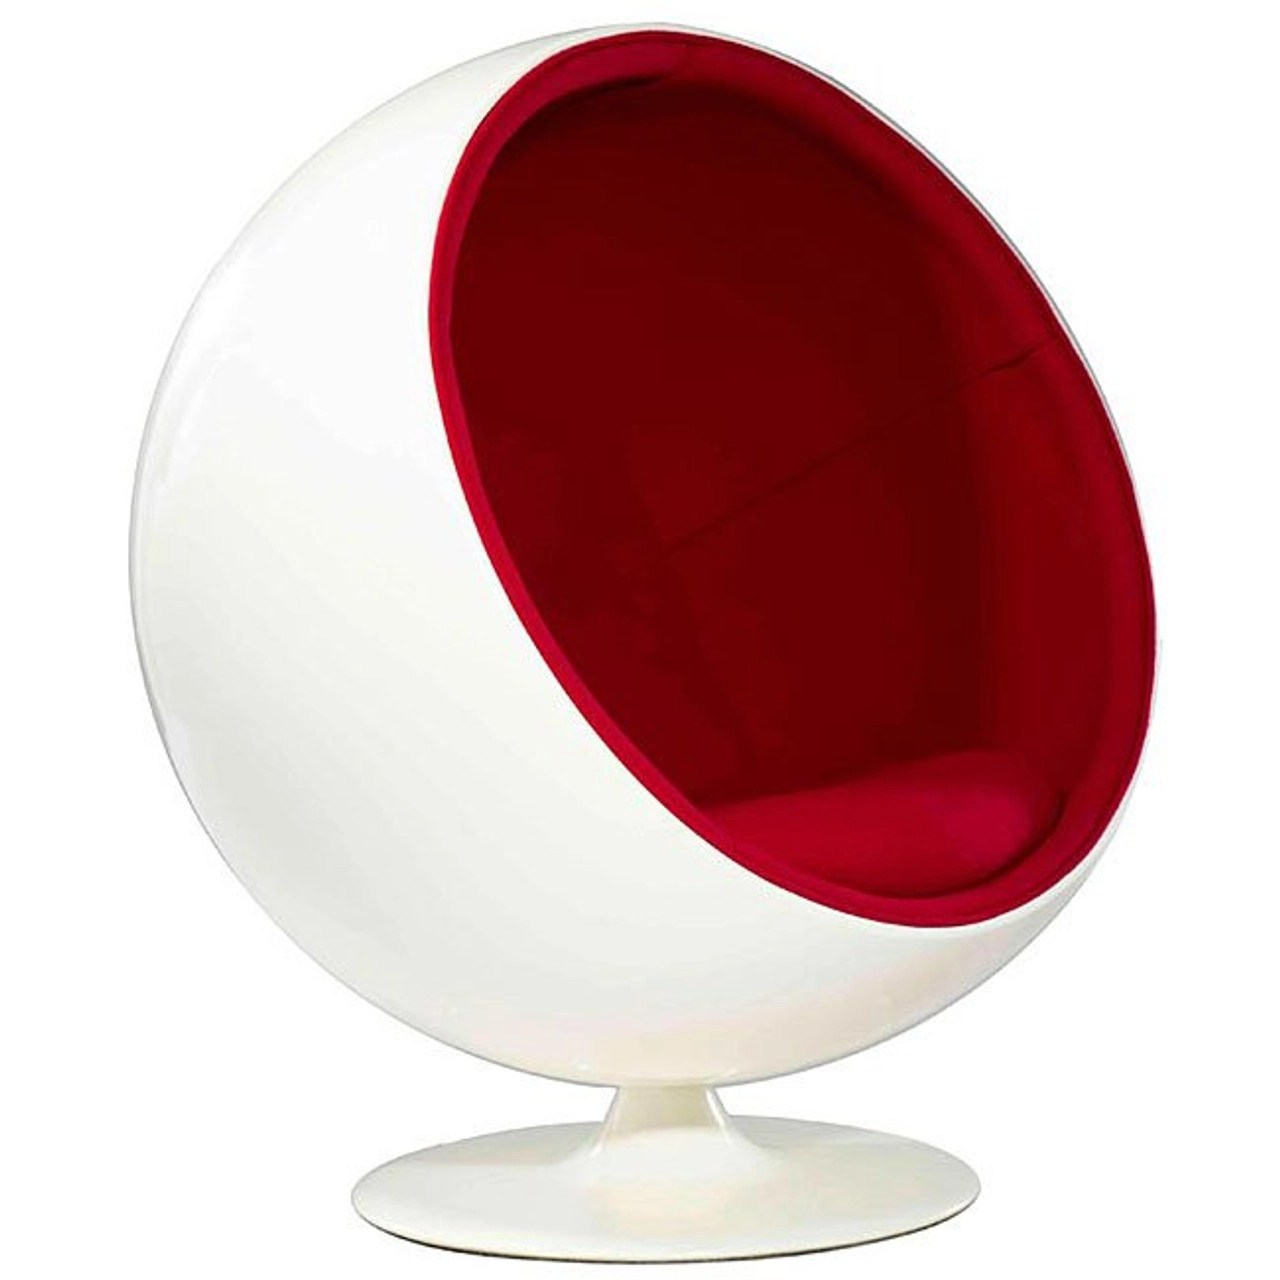 Ball Chair Ball Chair Inspired By Eero Aarnio - Star Design Uk